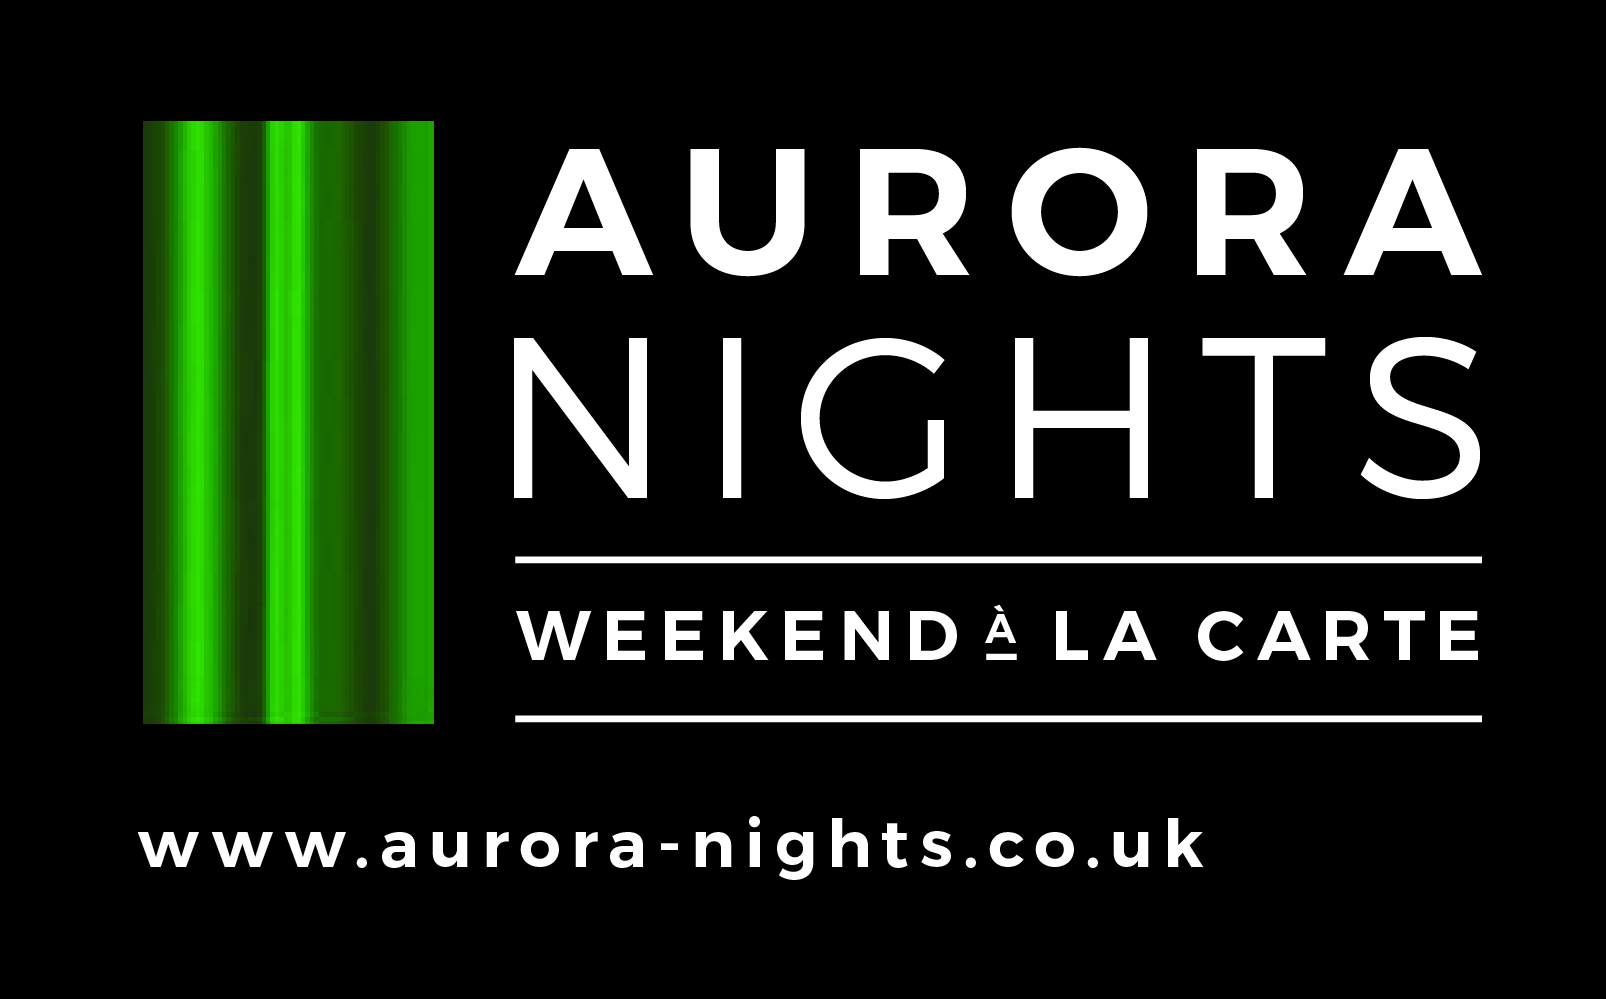 Weekend a la Carte's Aurora nights can combine our cabins with a trip to Swedish Lapland for amazing once in a lifetime adventures.